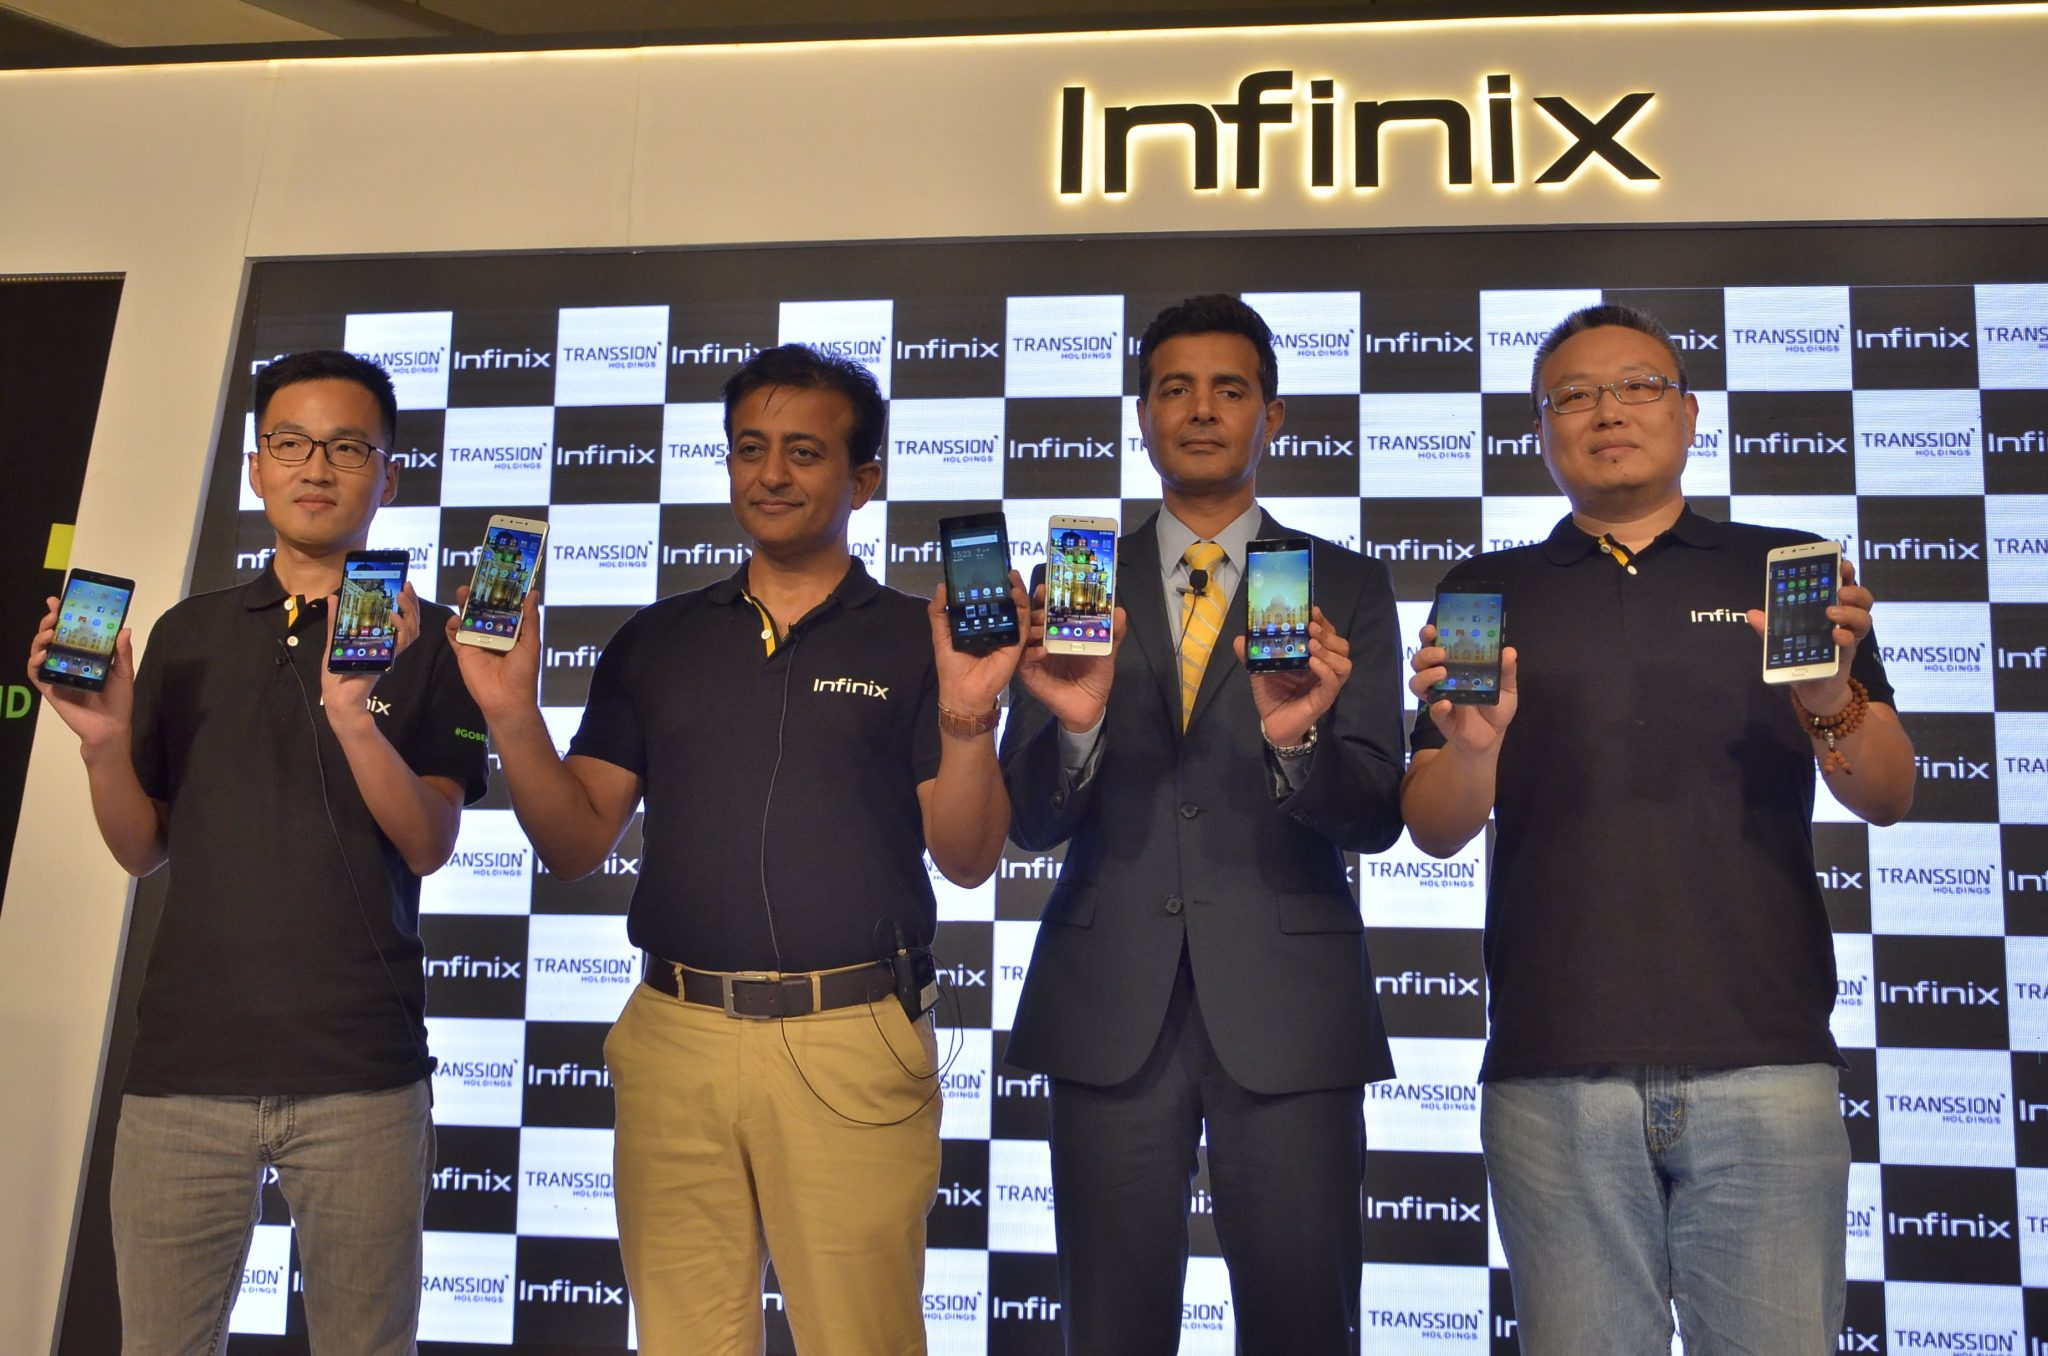 Infinix join hands with Flipkart to launch smartphones in India